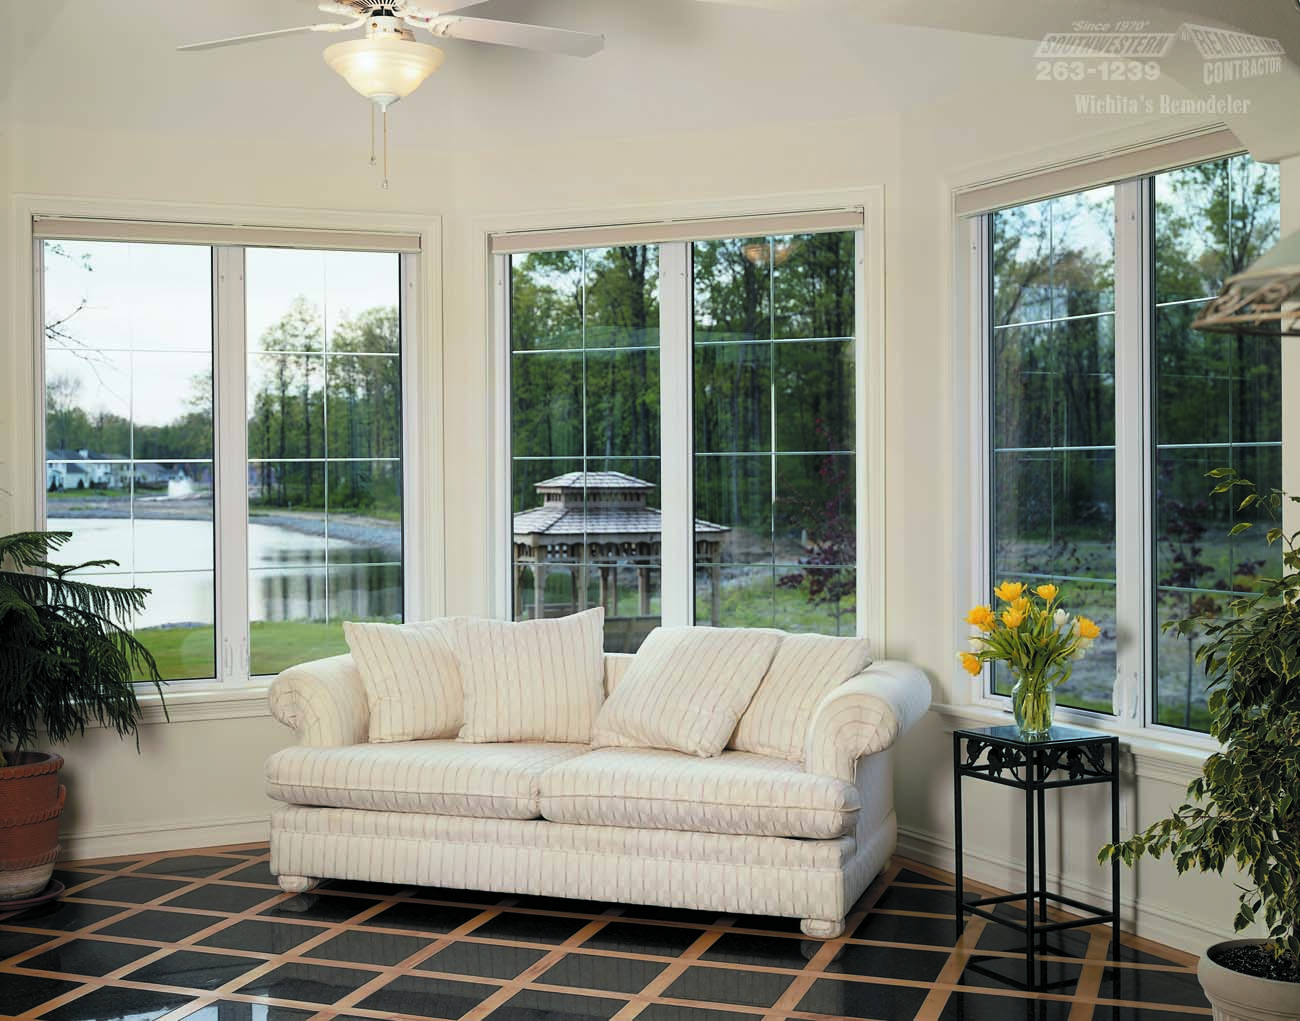 Southwestern-Remodeling-Replacement-Windows-4